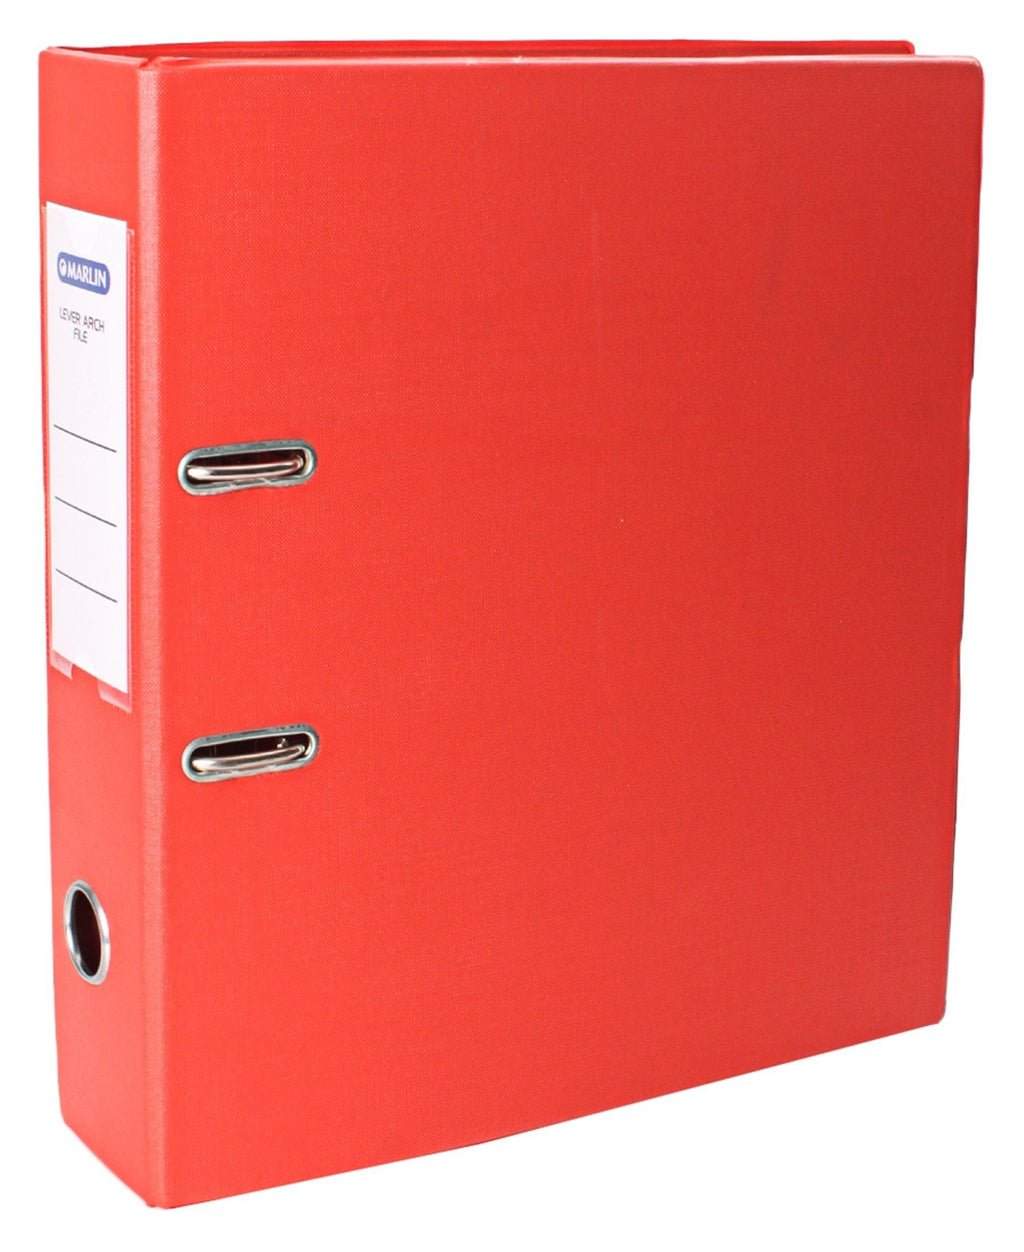 Marlin PVC Lever Arch File - Orange